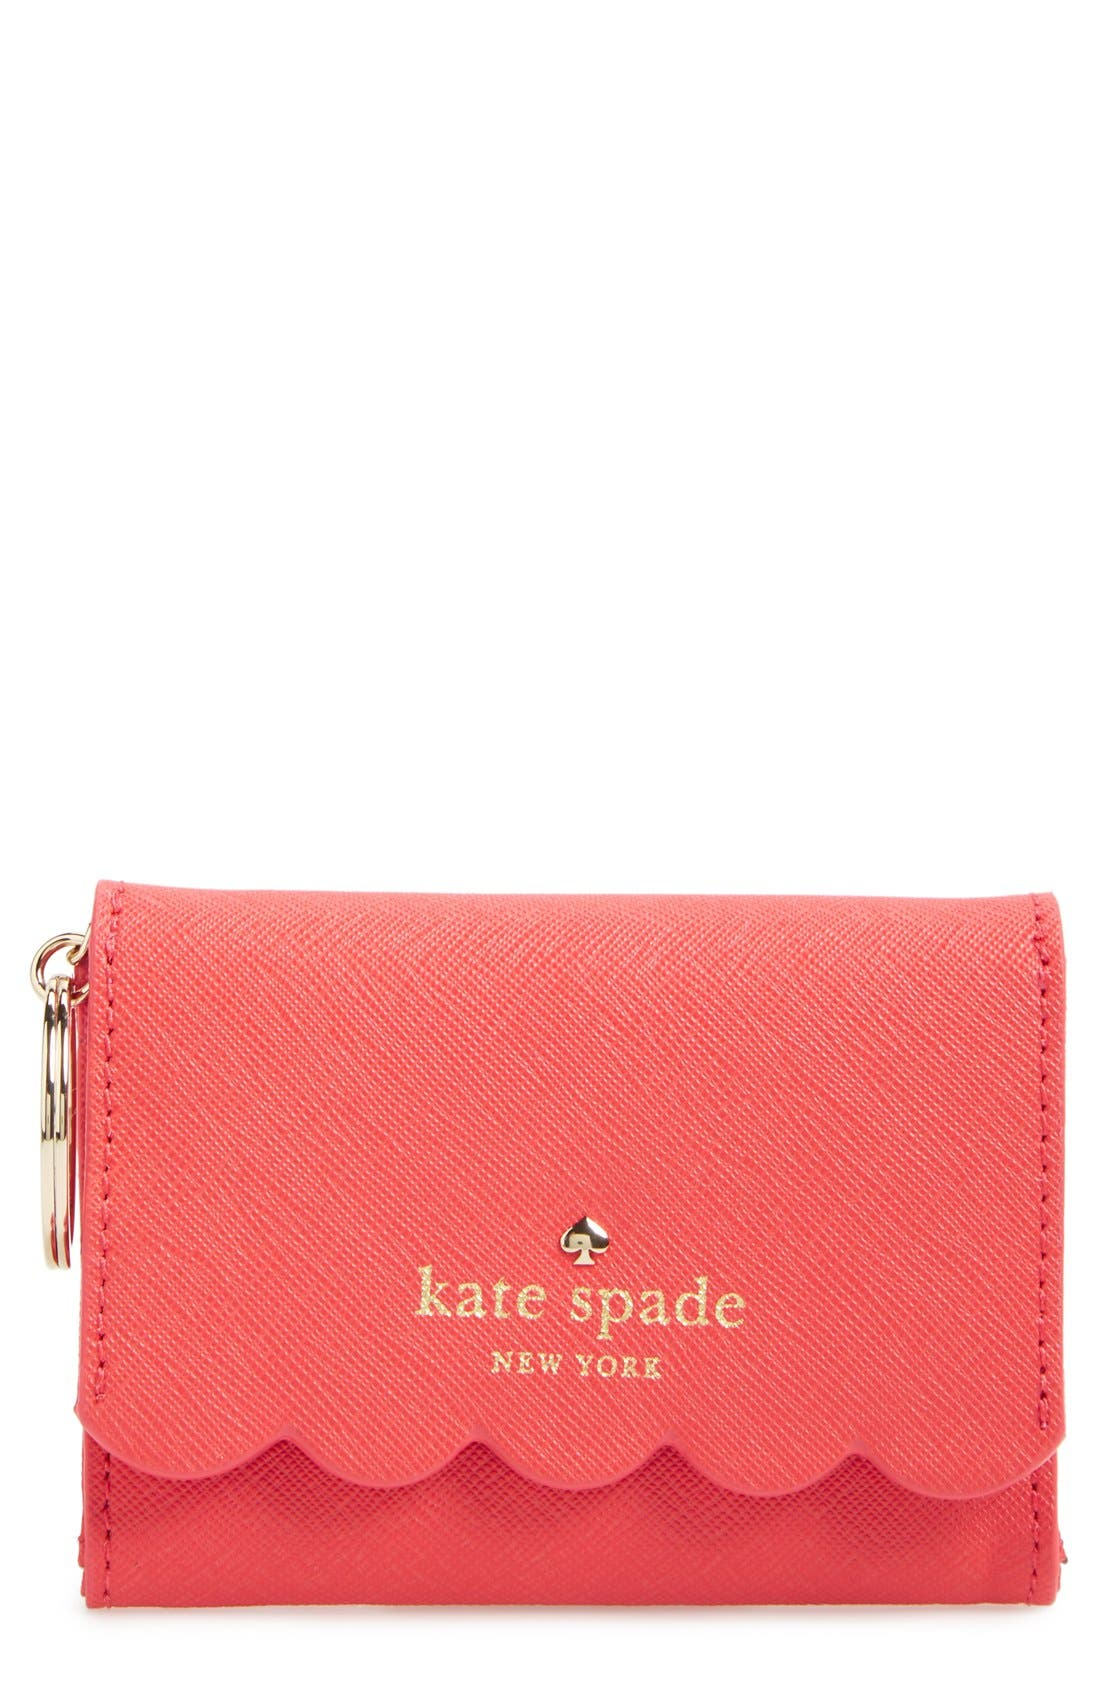 Main Image - kate spade new york 'lily avenue - darla' leather wallet